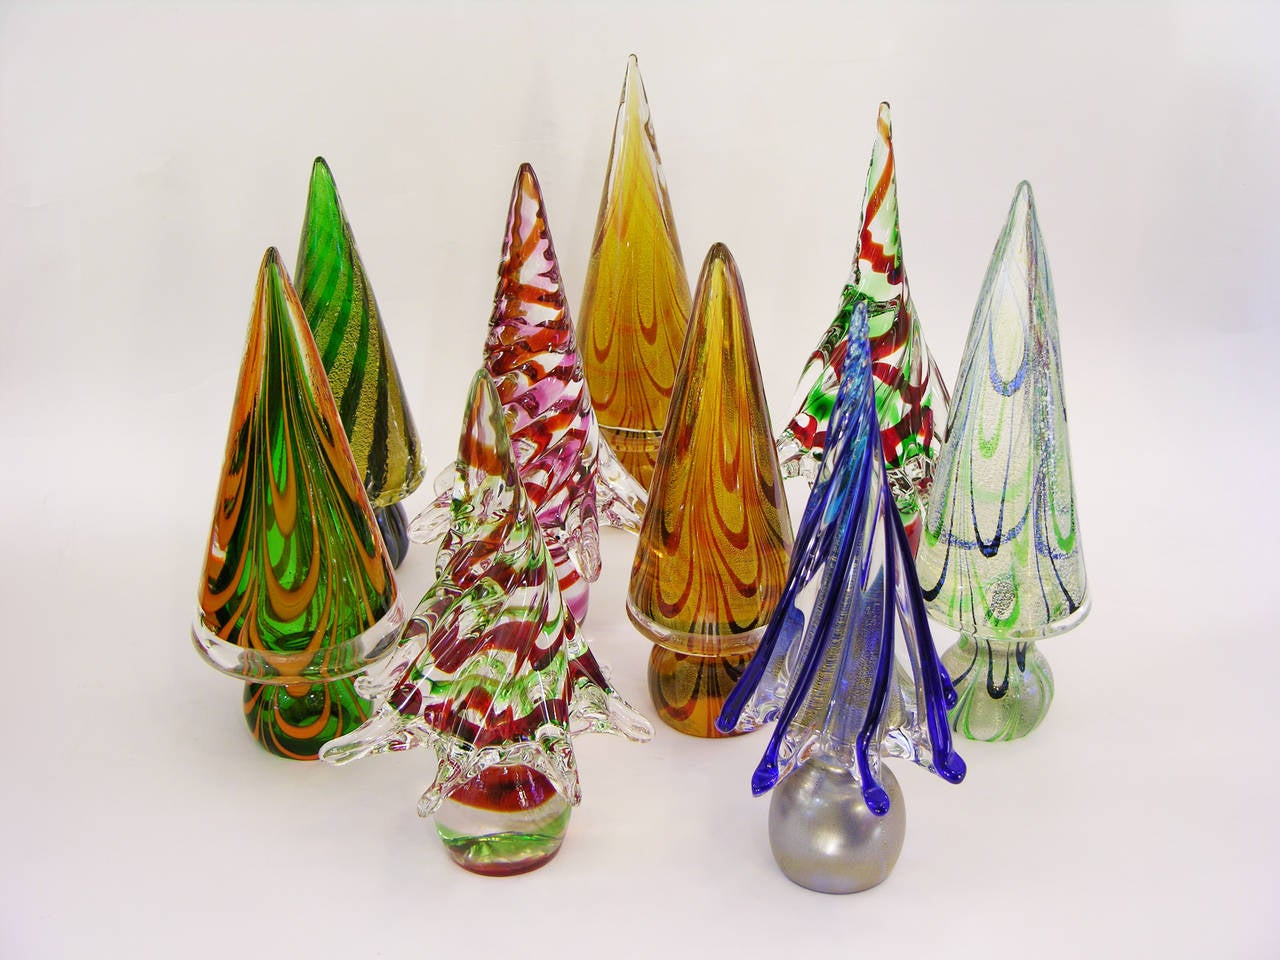 Vintage Italian Murano Glass Christmas Tree Sculptures by Formia